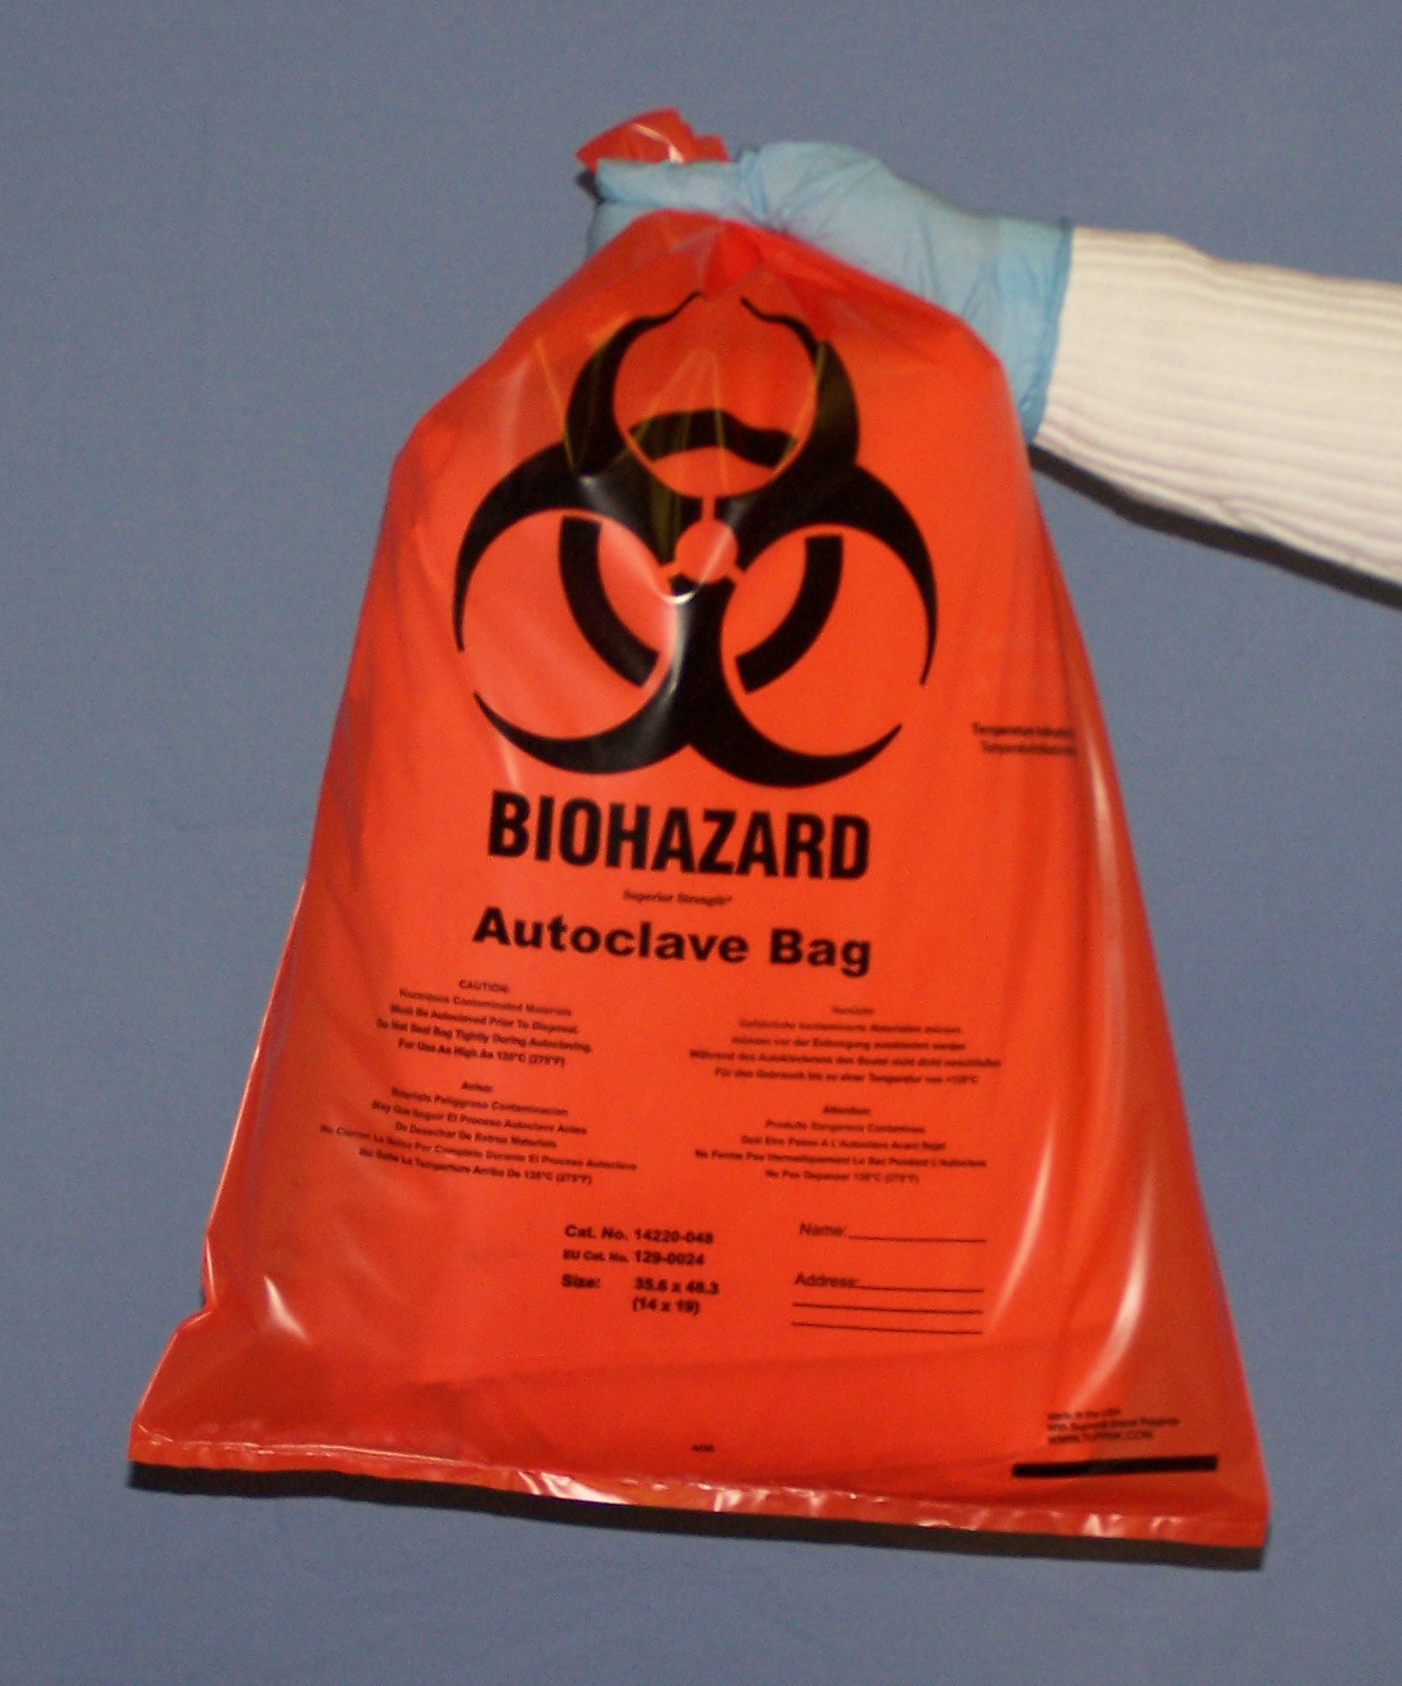 BIOHAZARD AUTOCLAVE BAGS 8X12 IN. ORANGE